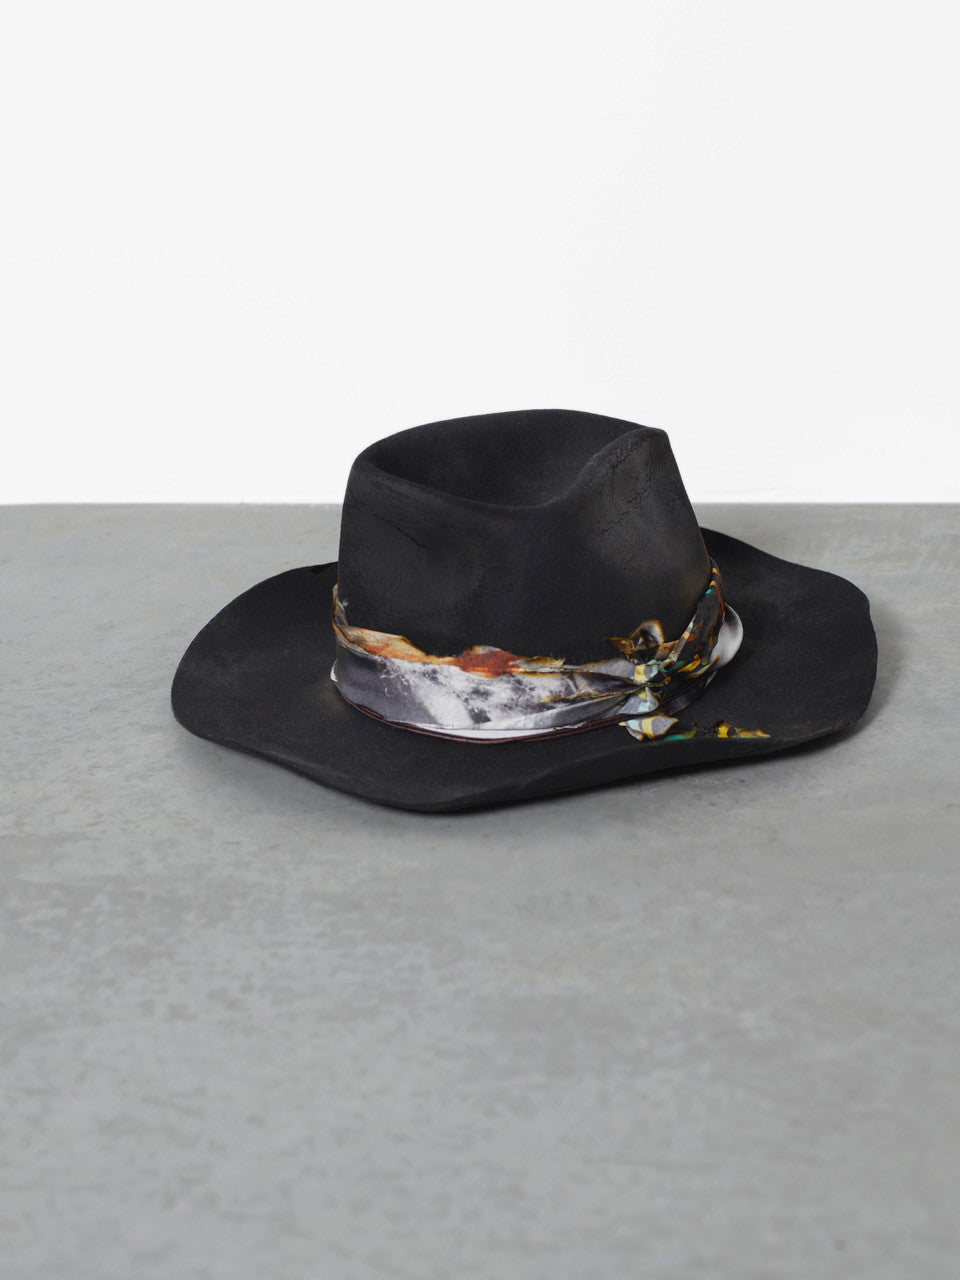 HG Rabbit Hat - Classic Black